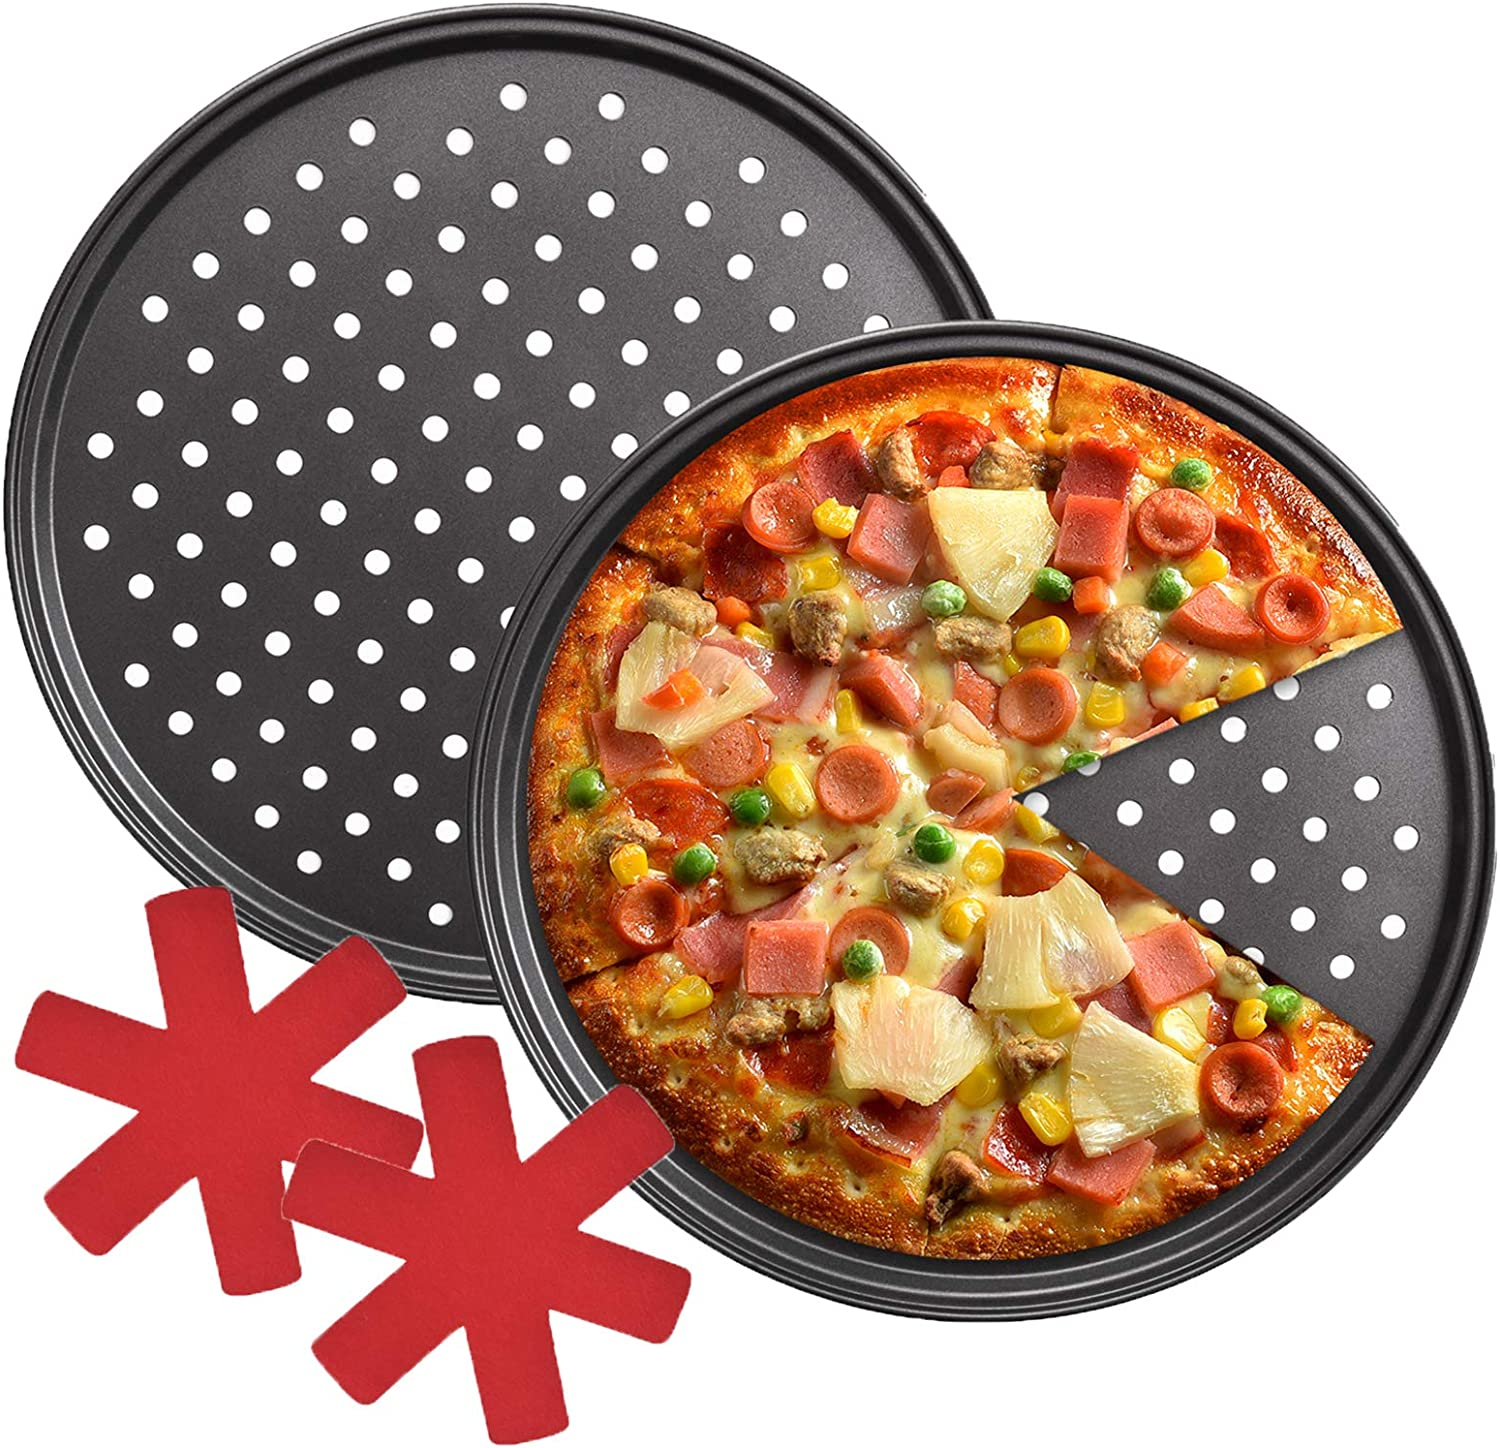 Round Pizza Bakeware for Home Kitchen Oven Pizza Pan with Holes for Oven 12 Inch Non-Stick Carbon Steel Perforated Pizza Crisper Pan